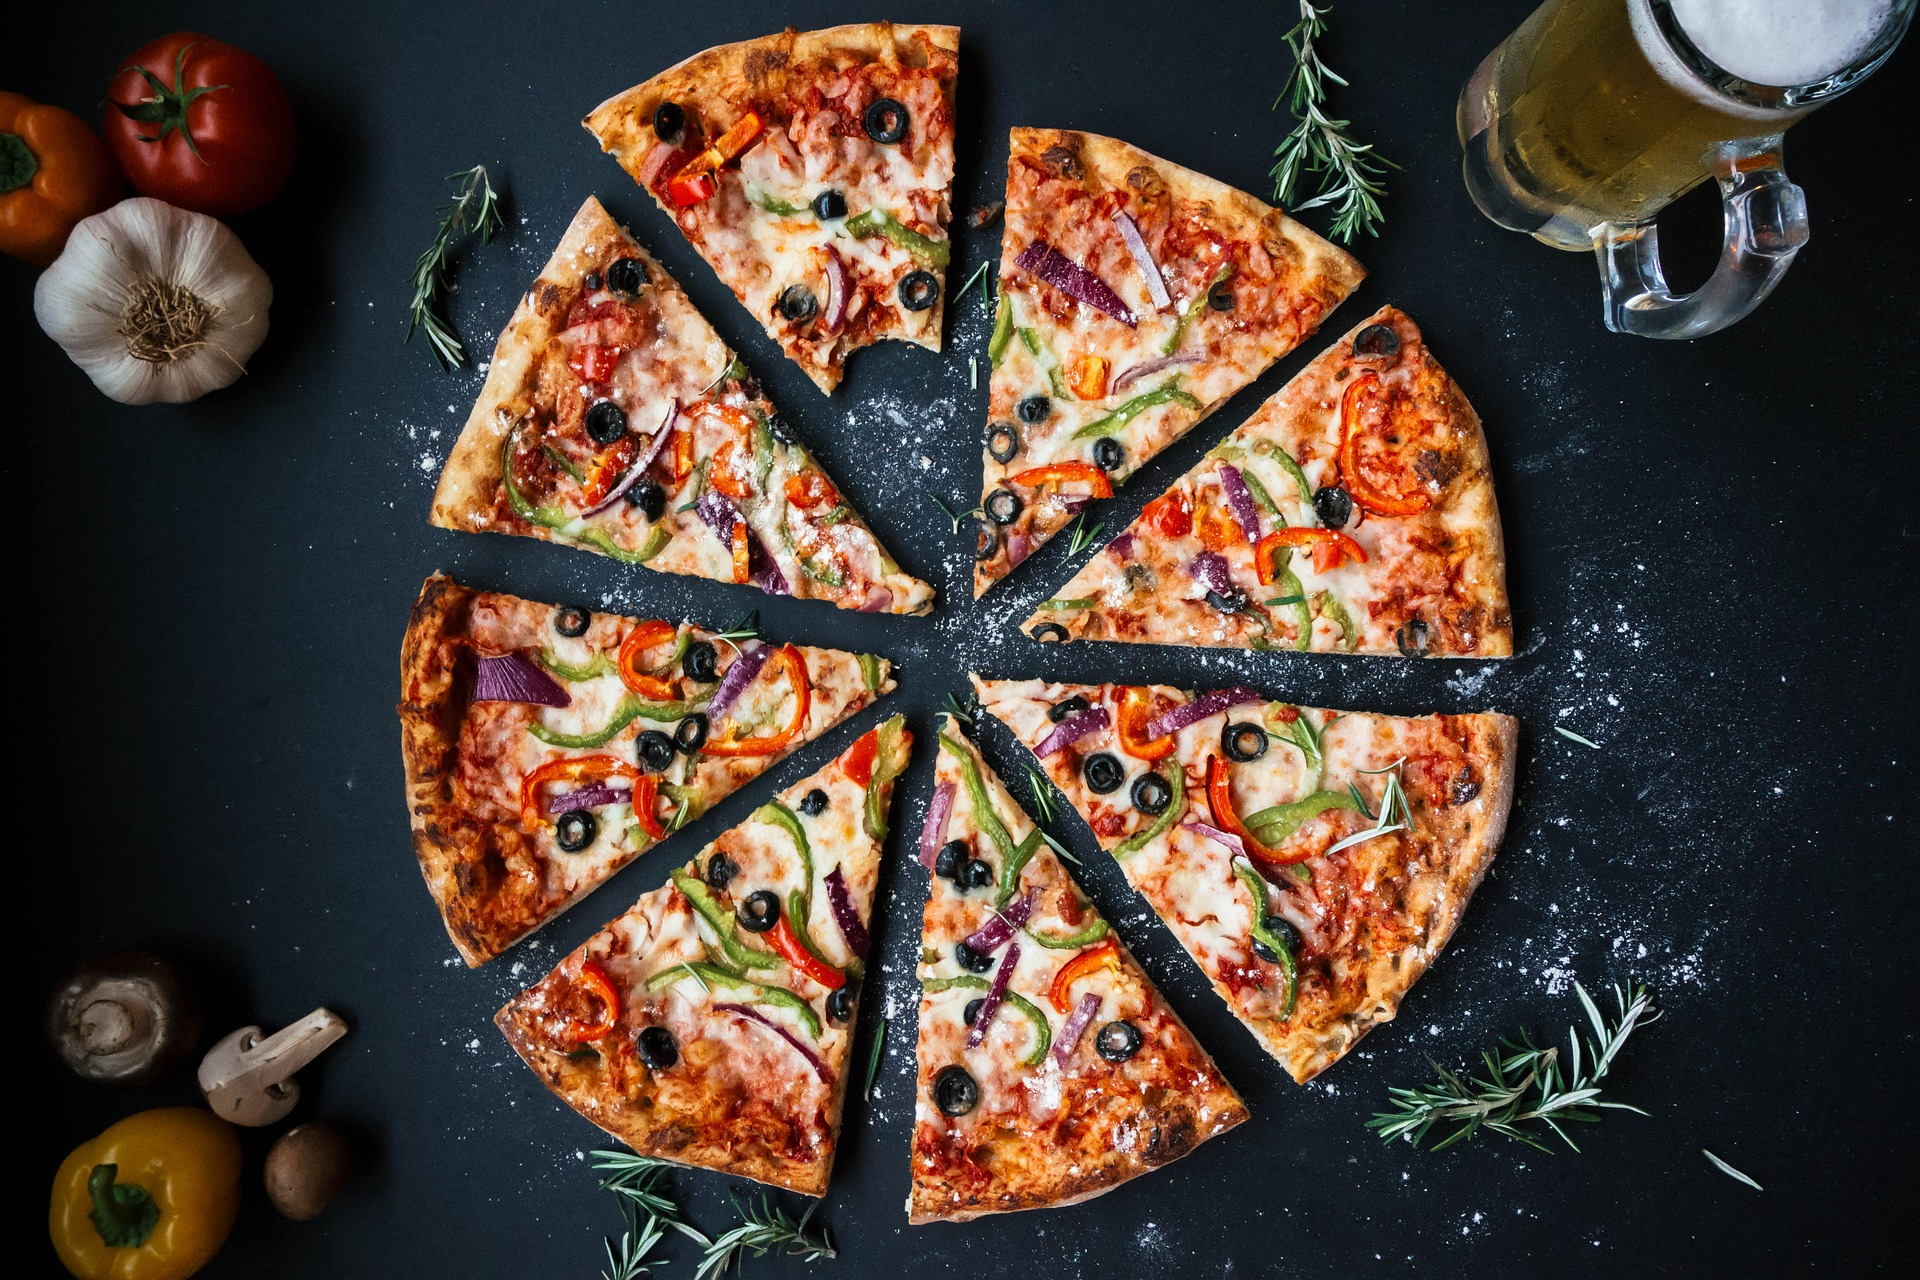 The 10 Best Pizza Stones For Grill Reviews and User Guides!